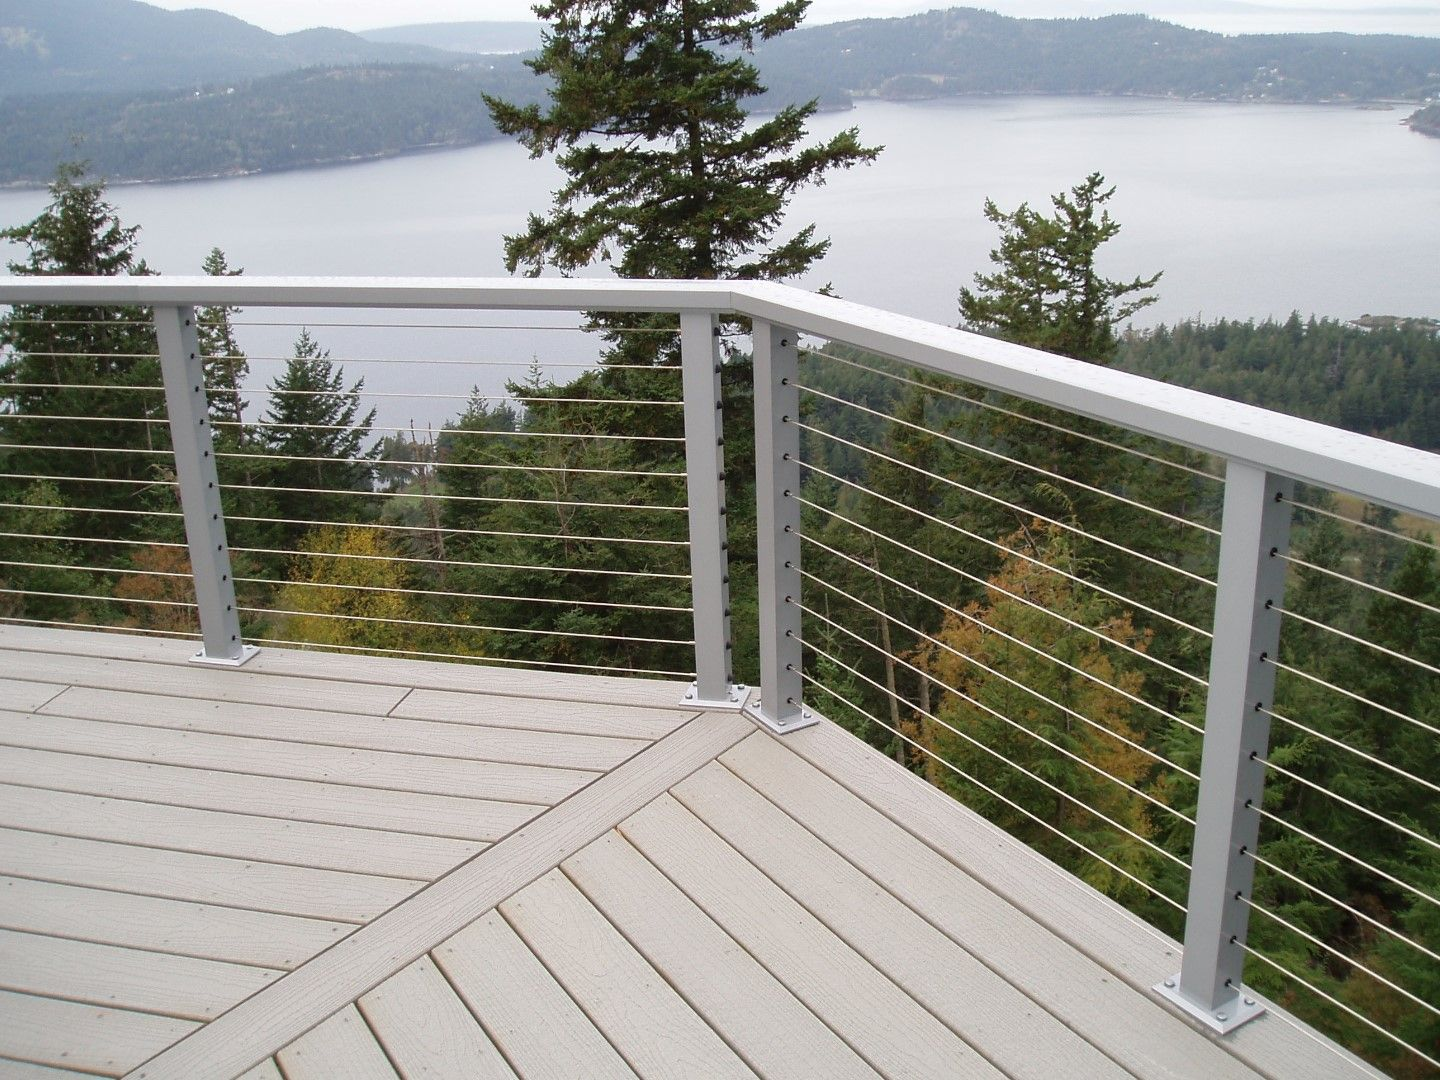 Stainless Steel Cable Railing Crystalite Inc Grey